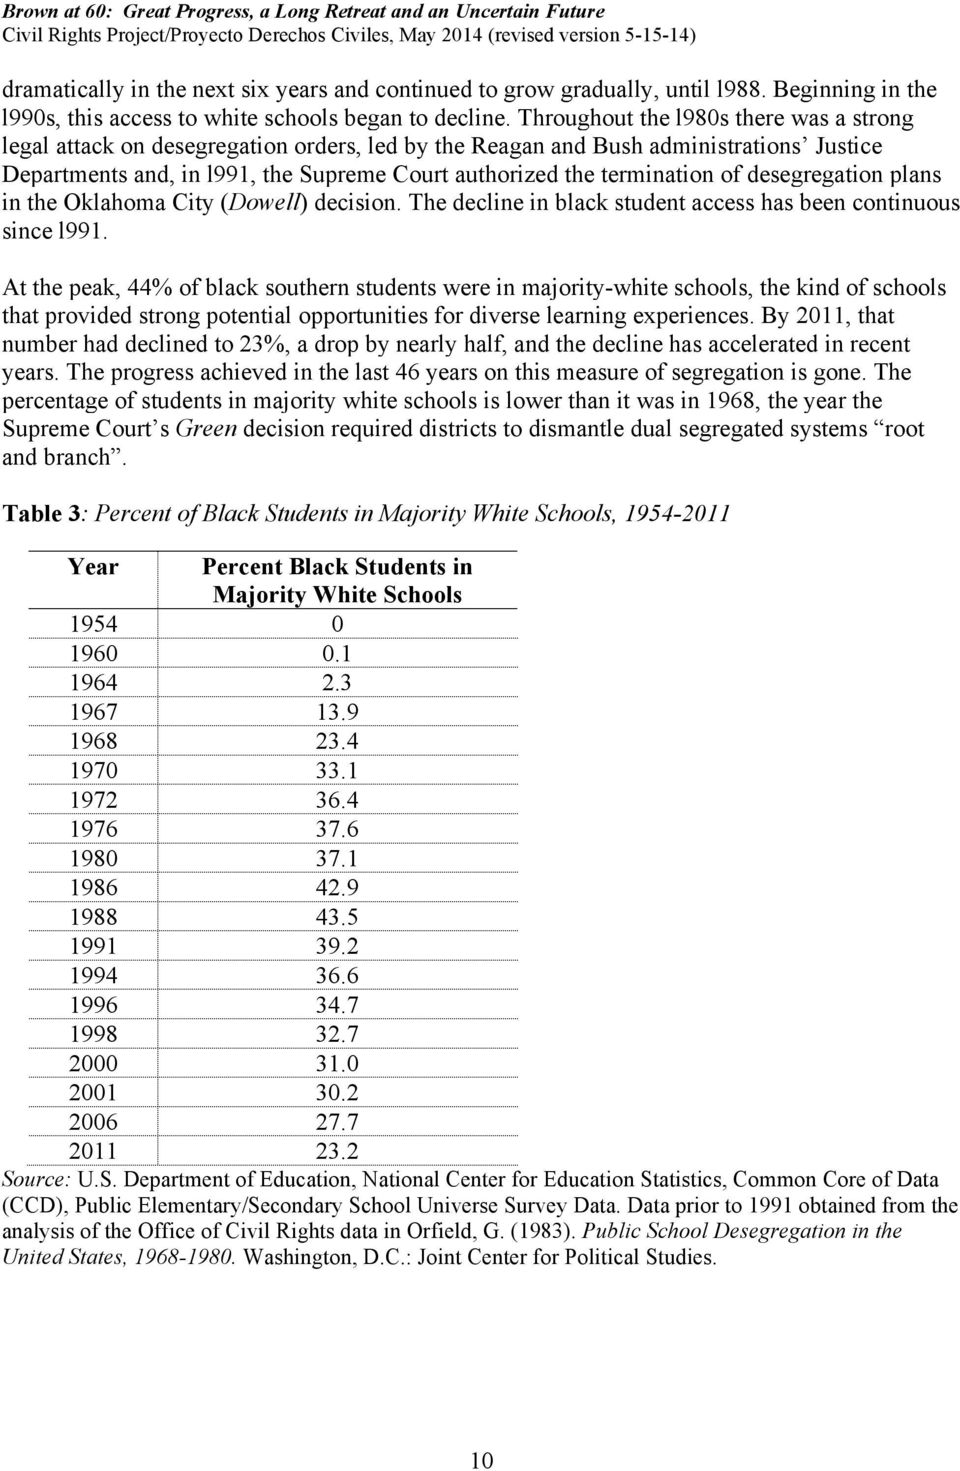 of desegregation plans in the Oklahoma City (Dowell) decision. The decline in black student access has been continuous since l991.